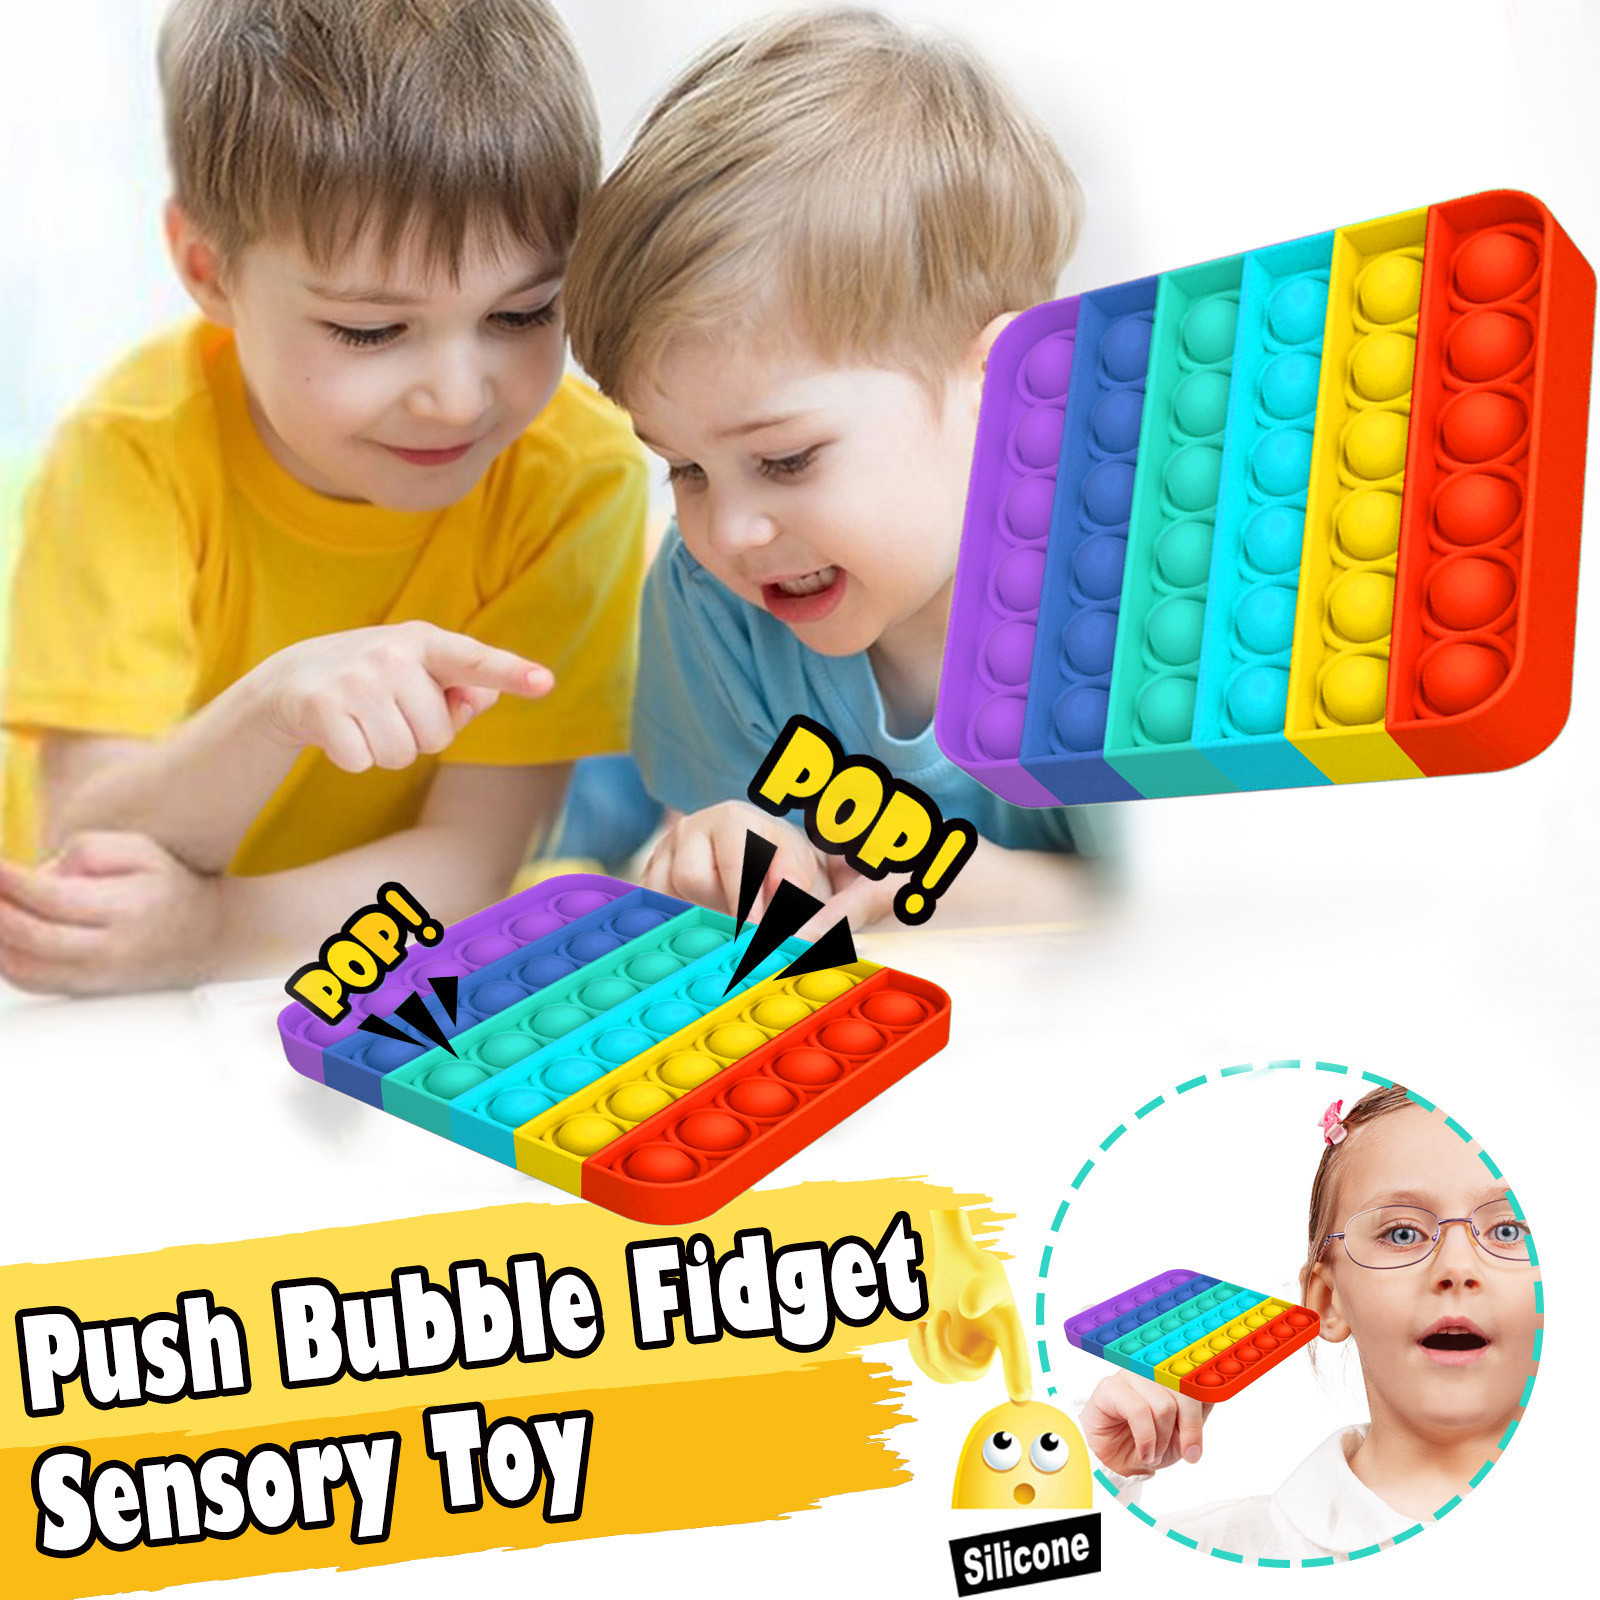 Bubble-Sensory-Toy Fidget-Toys Autism Adhd Popit-Stress Special Needs Squishy Reliever img1